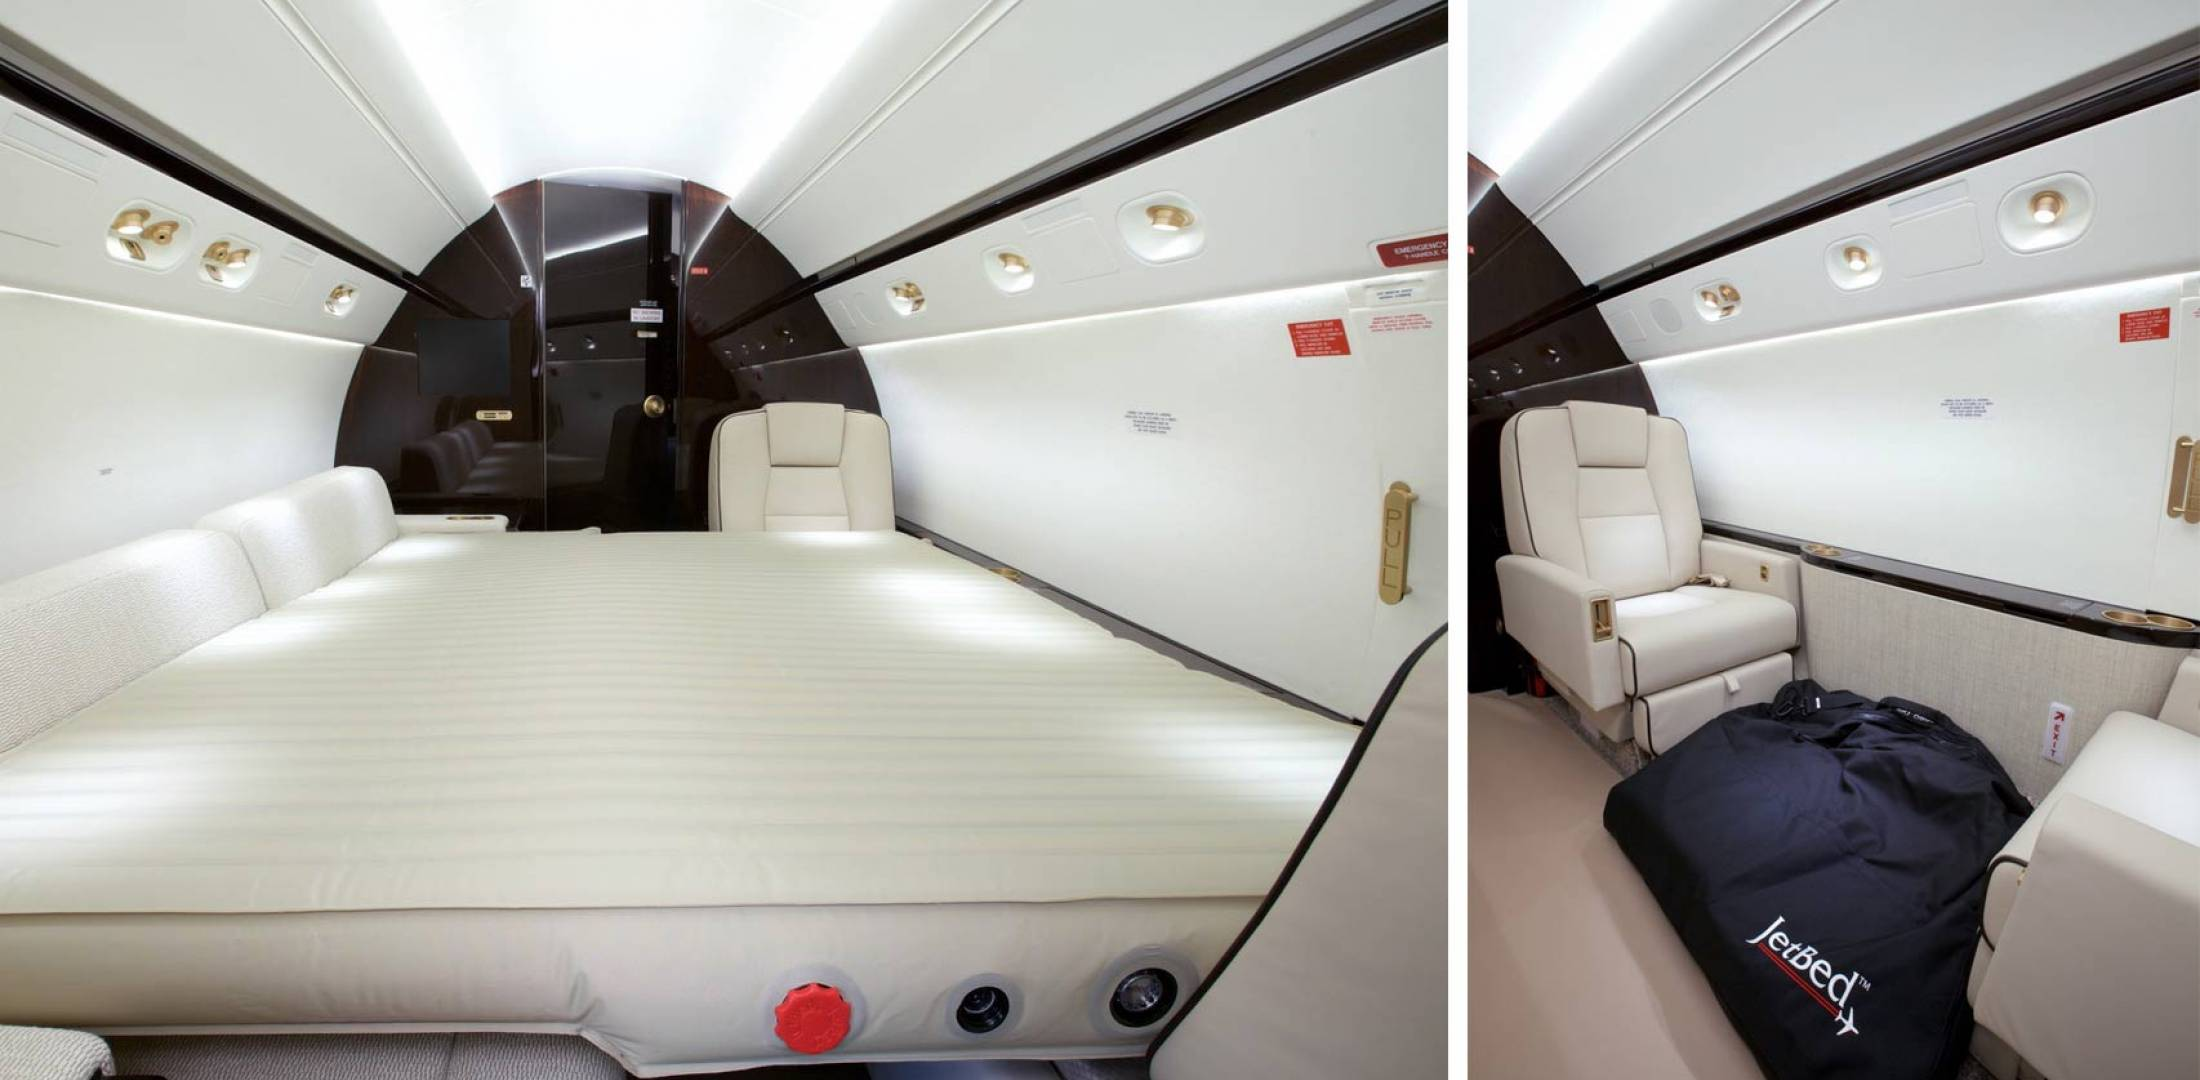 Transforming a light jet cabin into a comfortable sleeping area has gotten a lot more feasible with JetBed's inflatable solution.